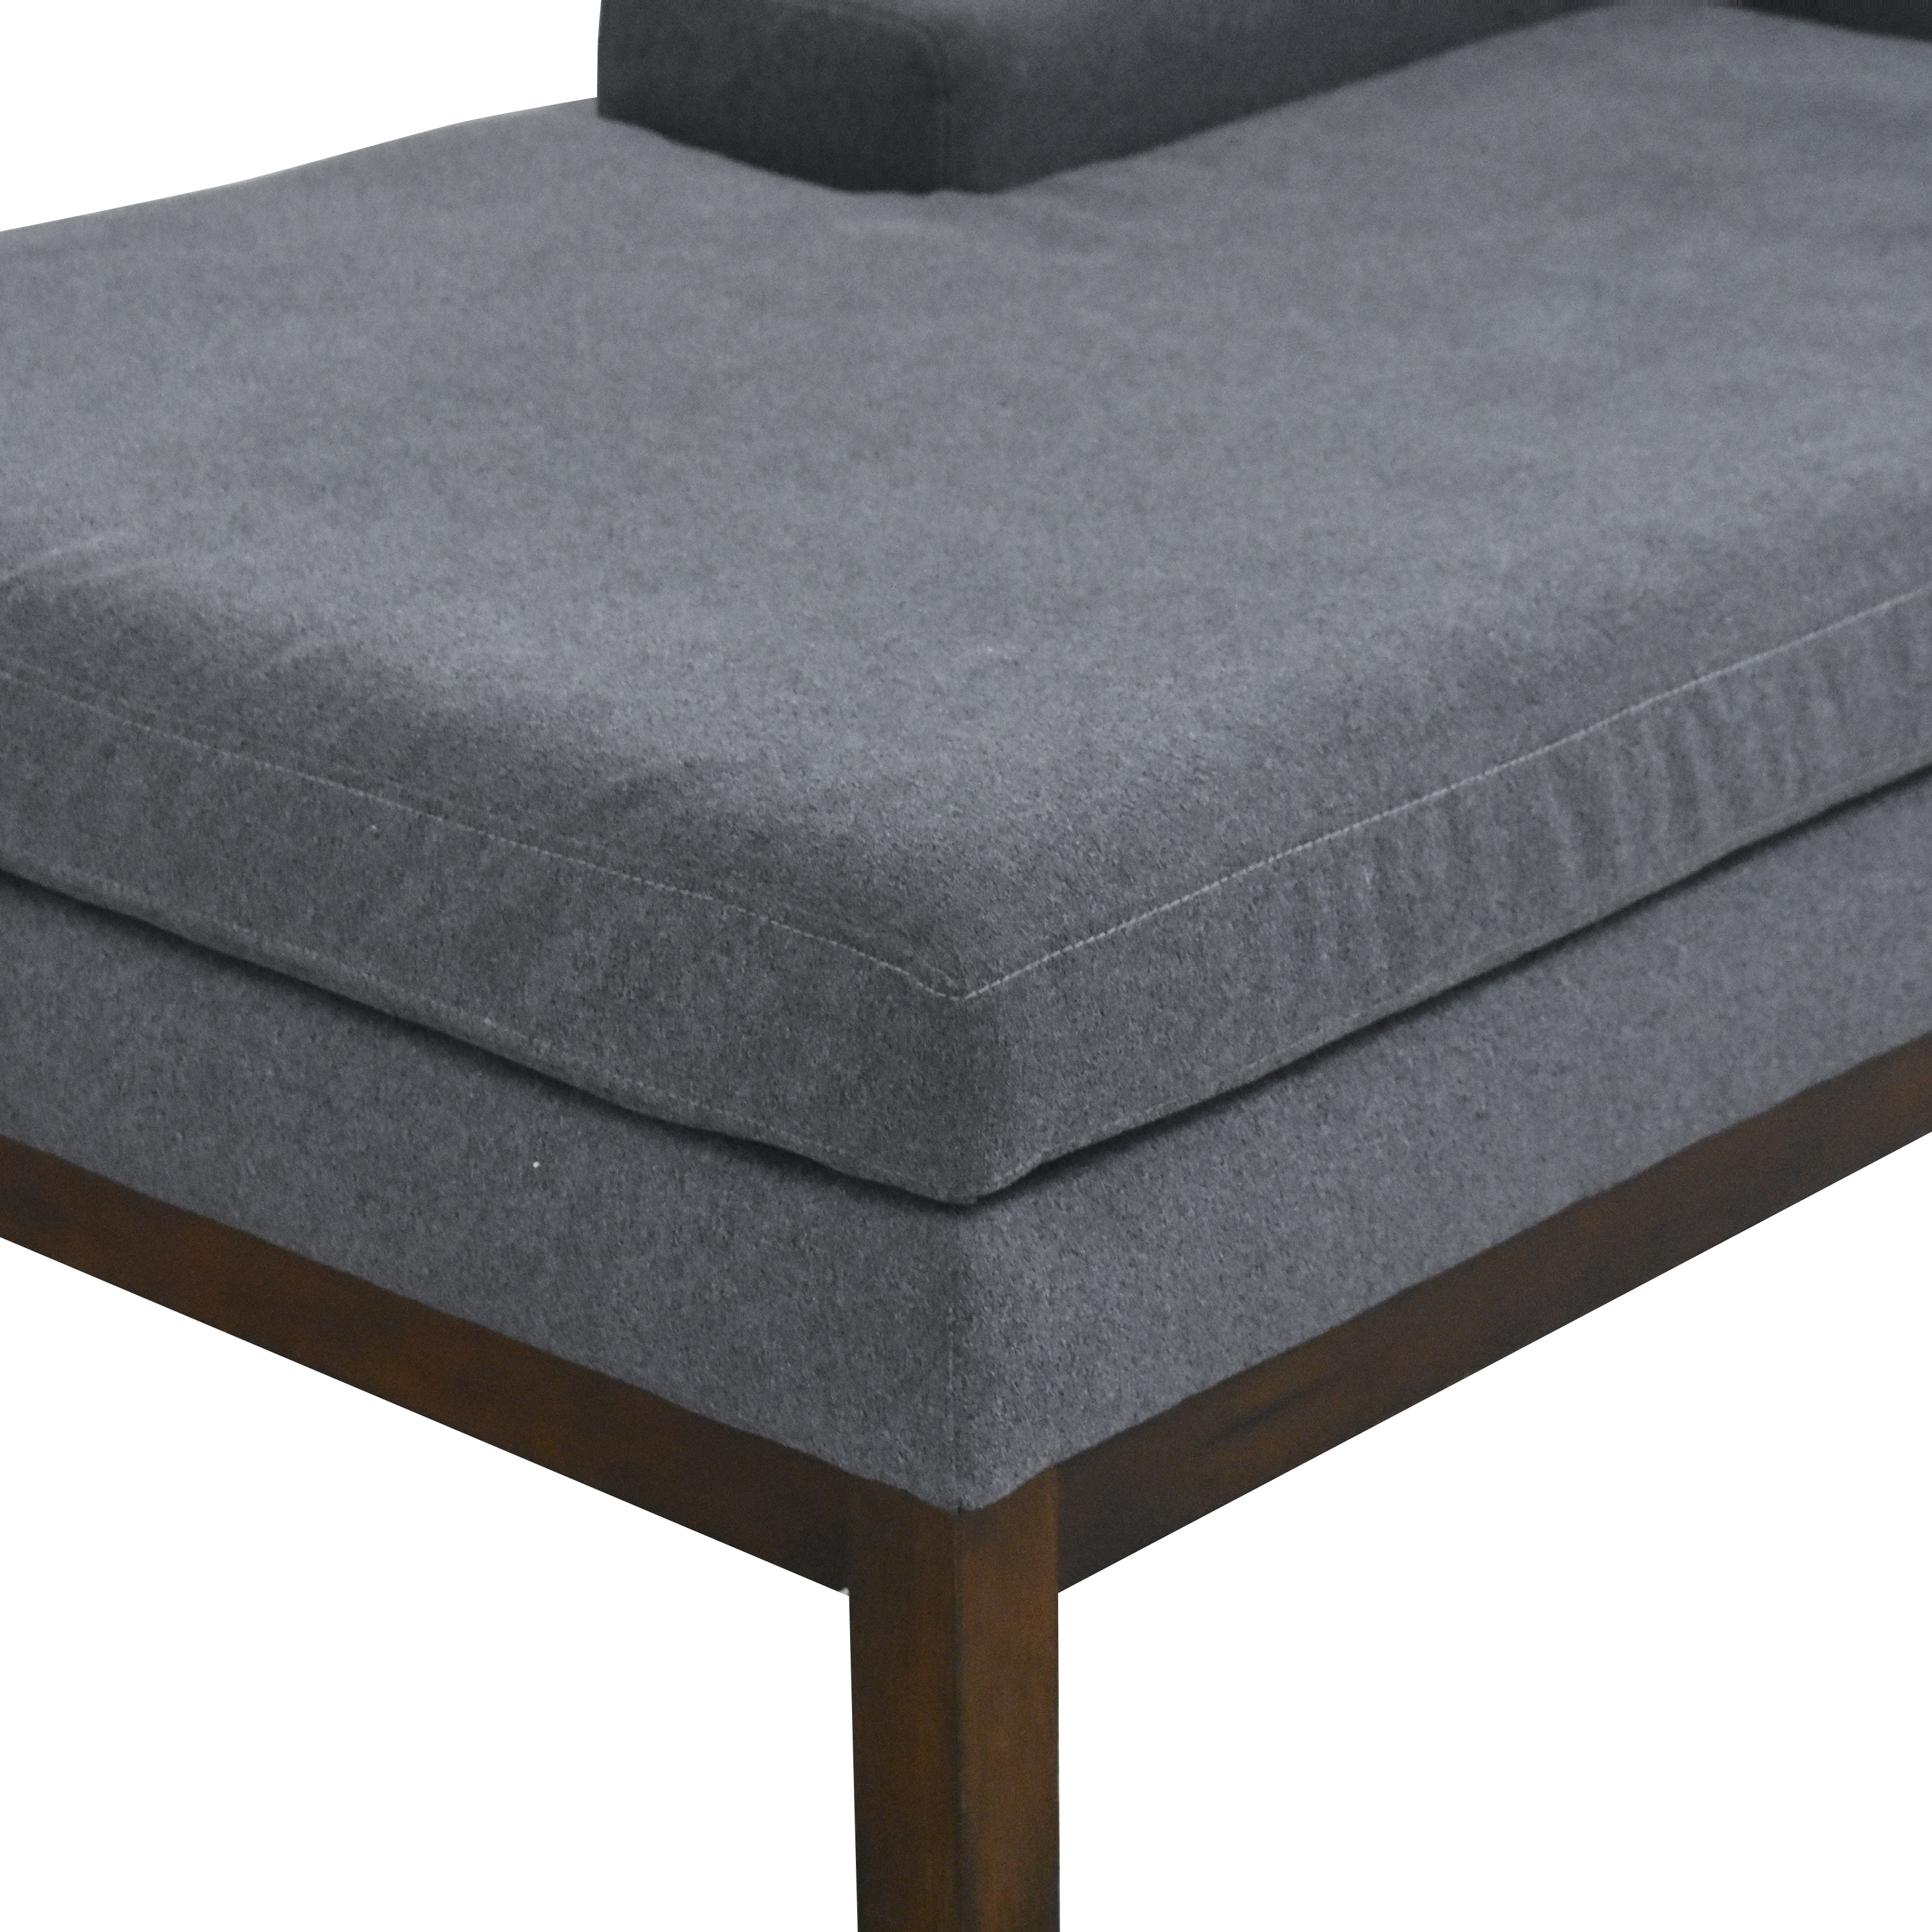 Pottery Barn Modern Chaise Lounge / Chaises